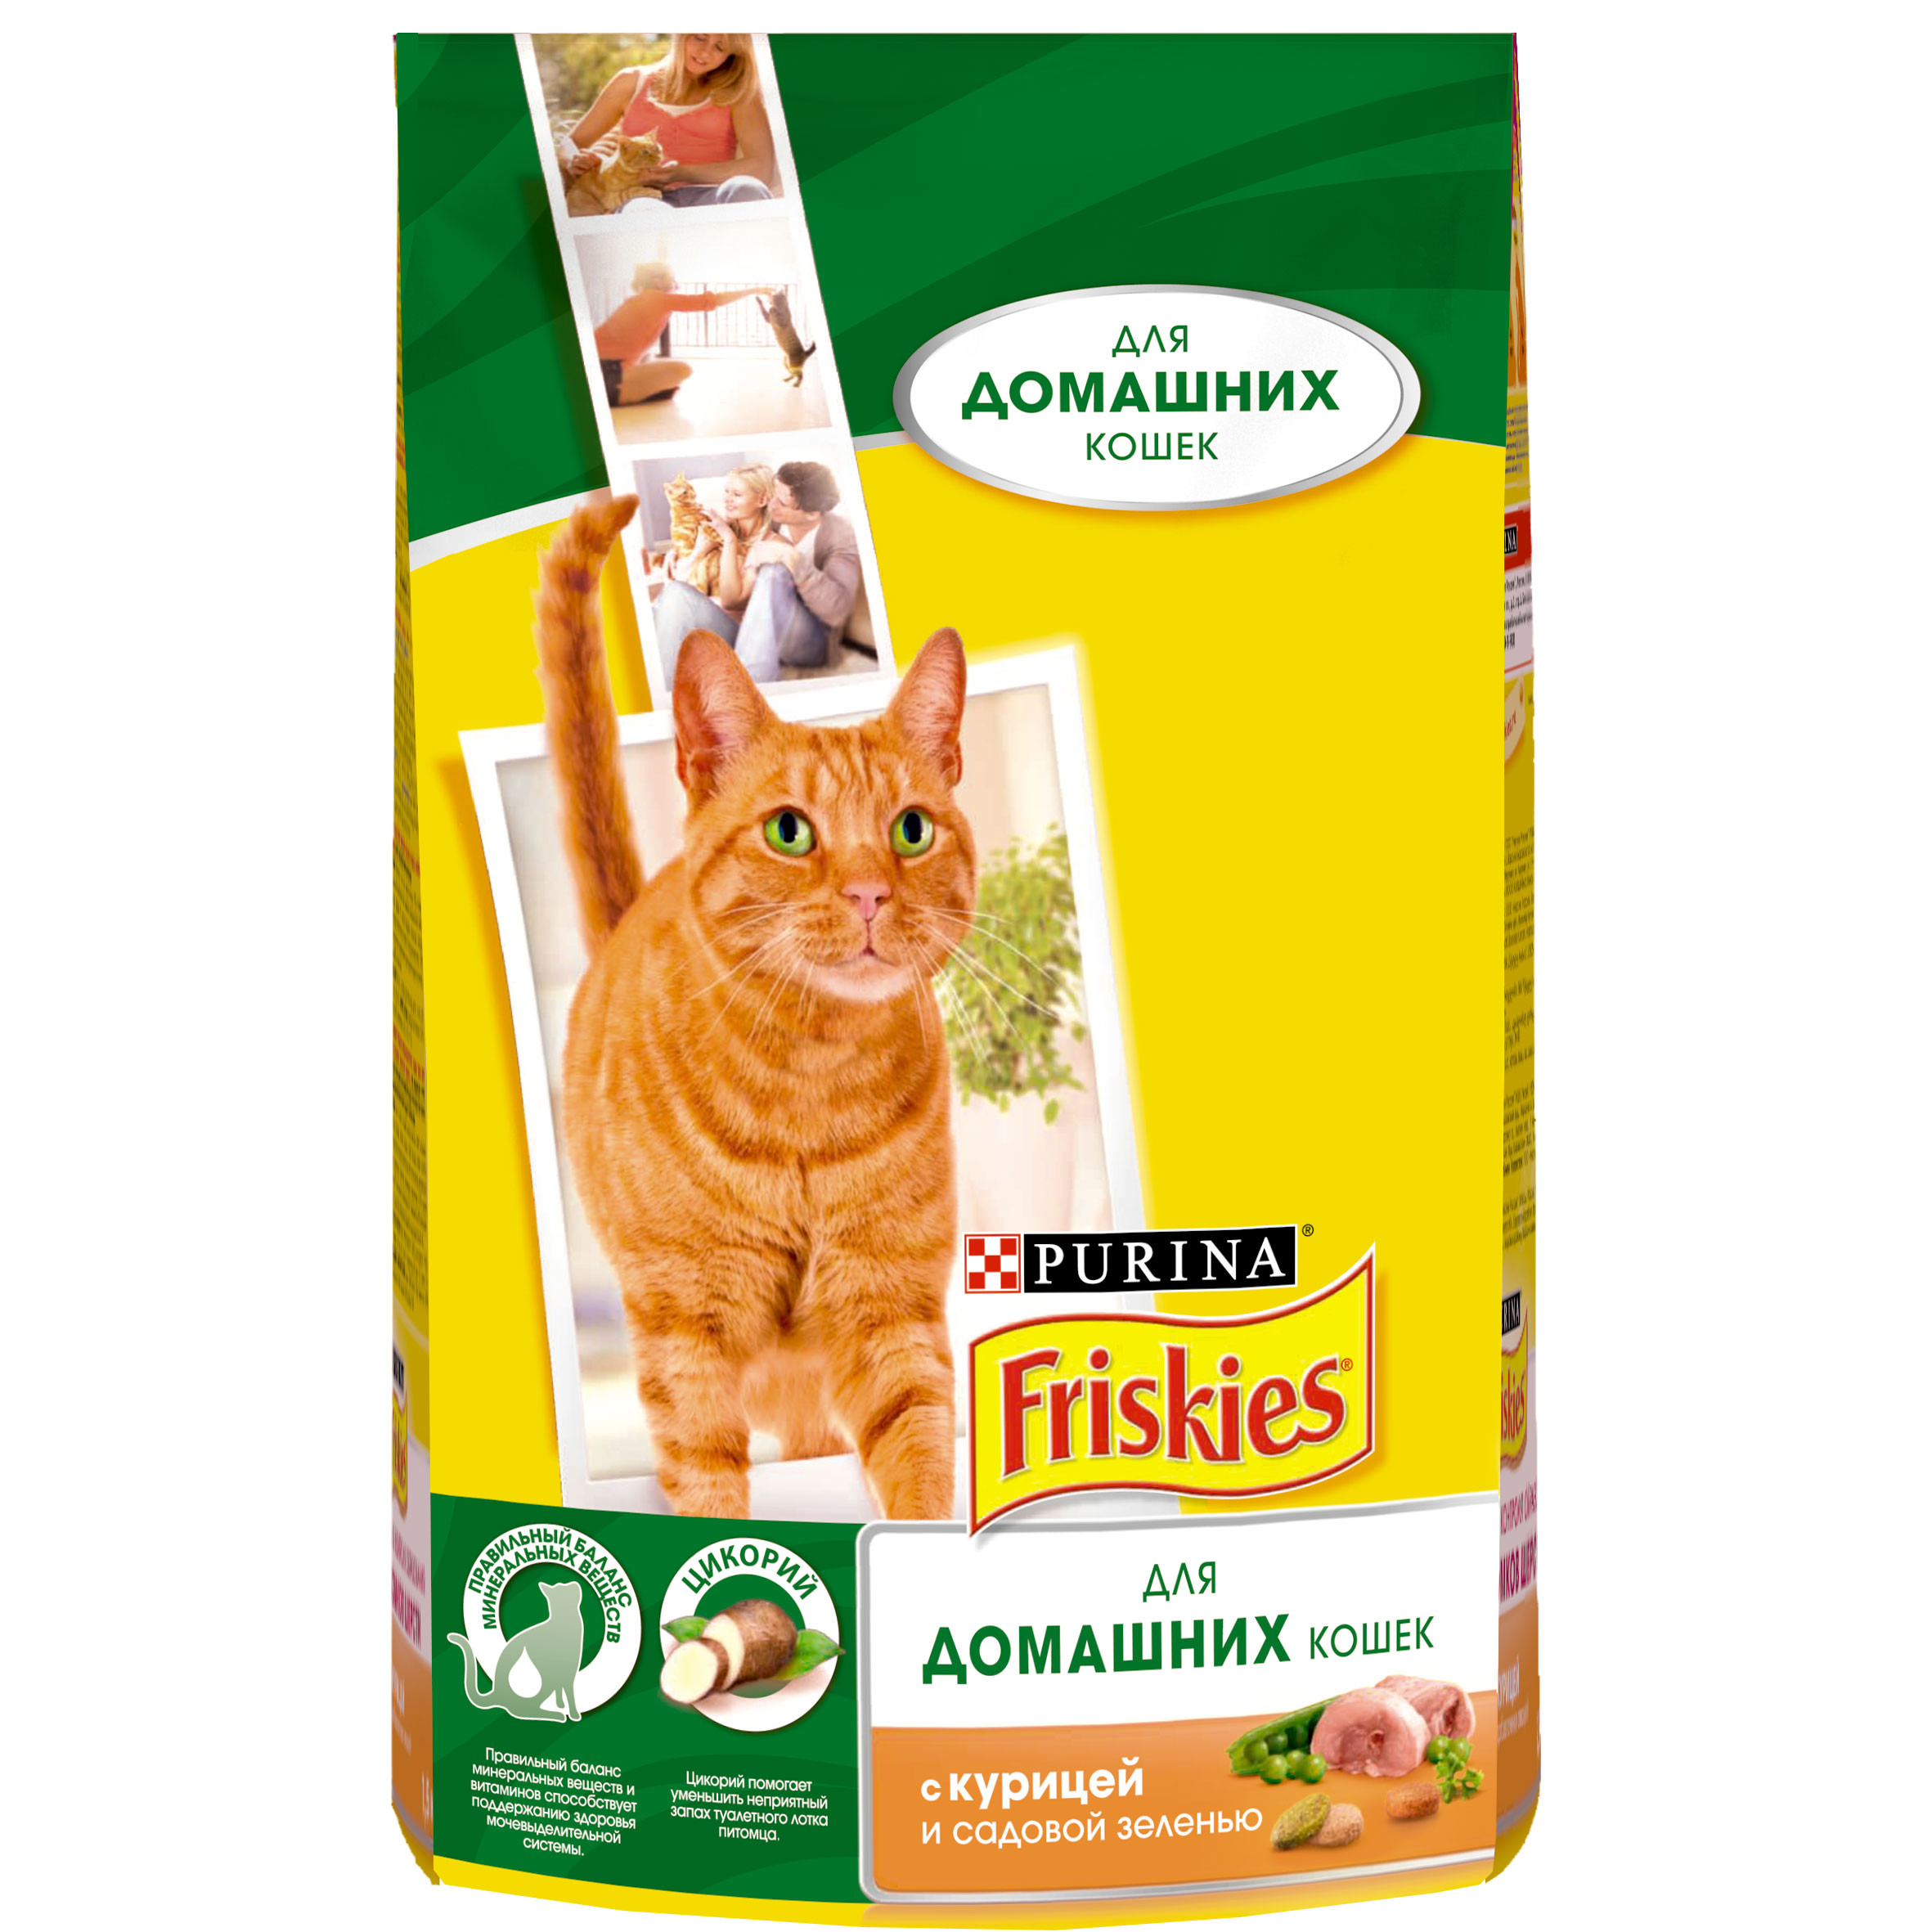 все цены на A set of dry food Friskies for domestic cats with chicken and garden greens, Package, 1.5 kg x 8 pcs. онлайн